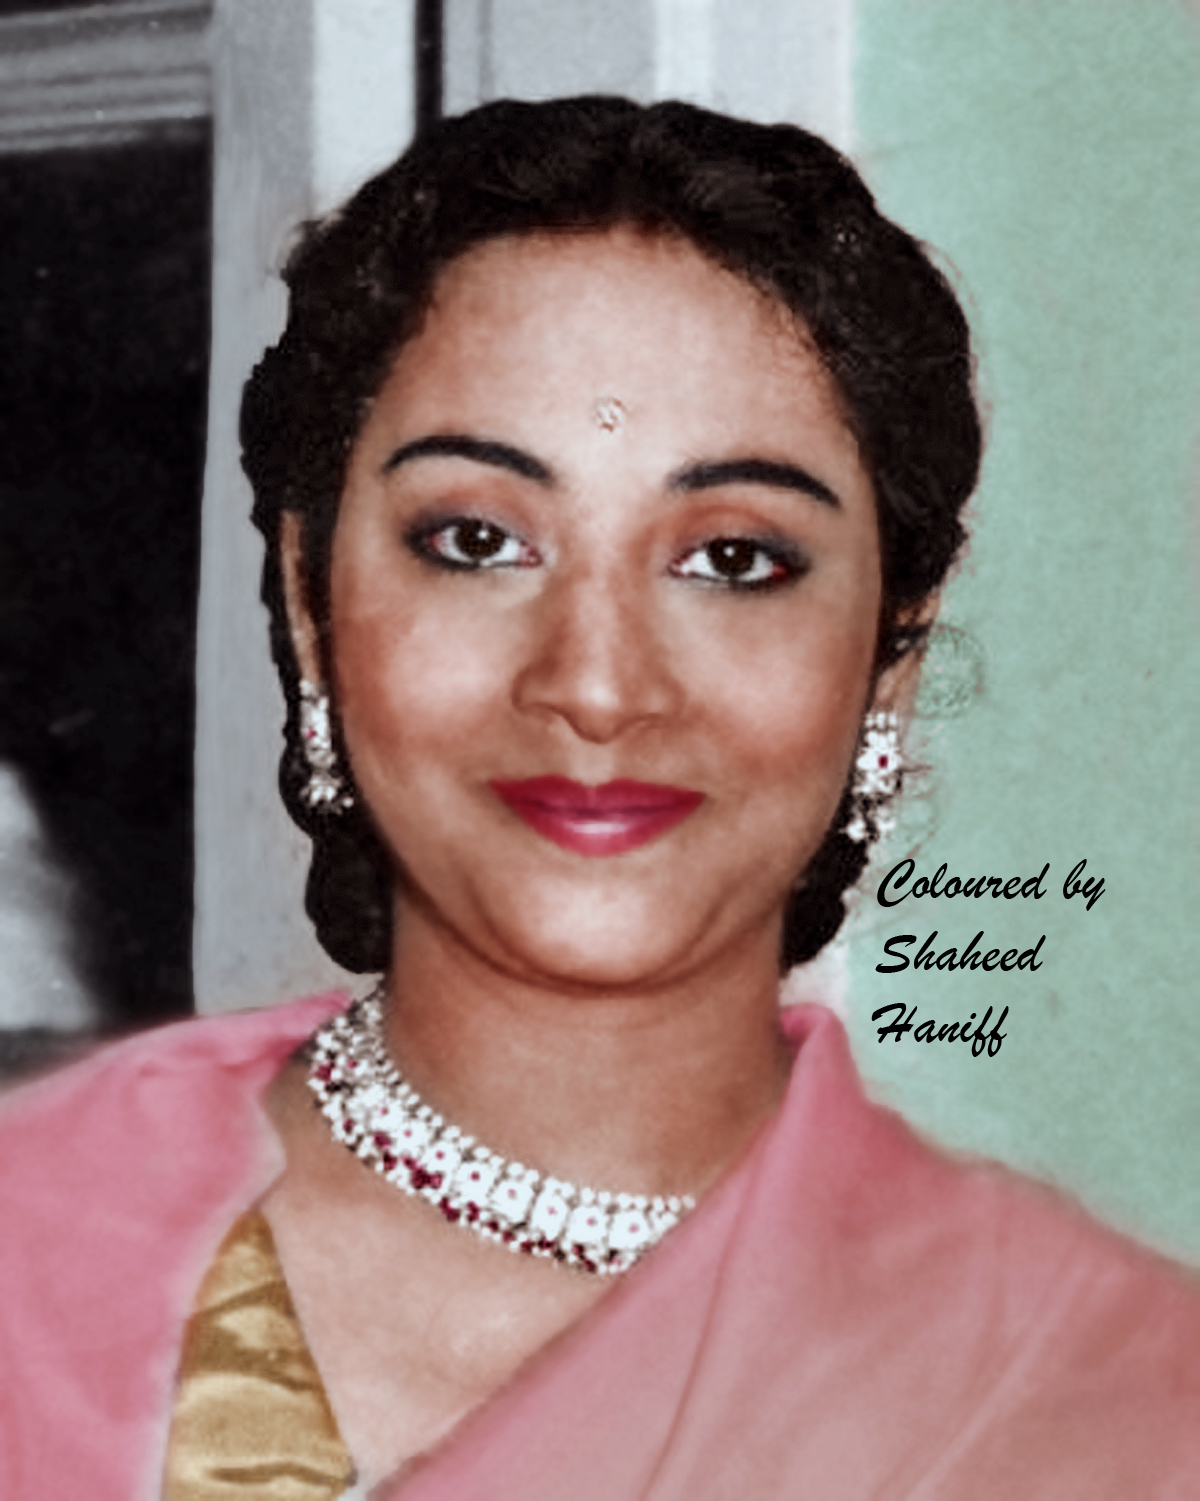 Geeta Dutt ji (colourised Picture)